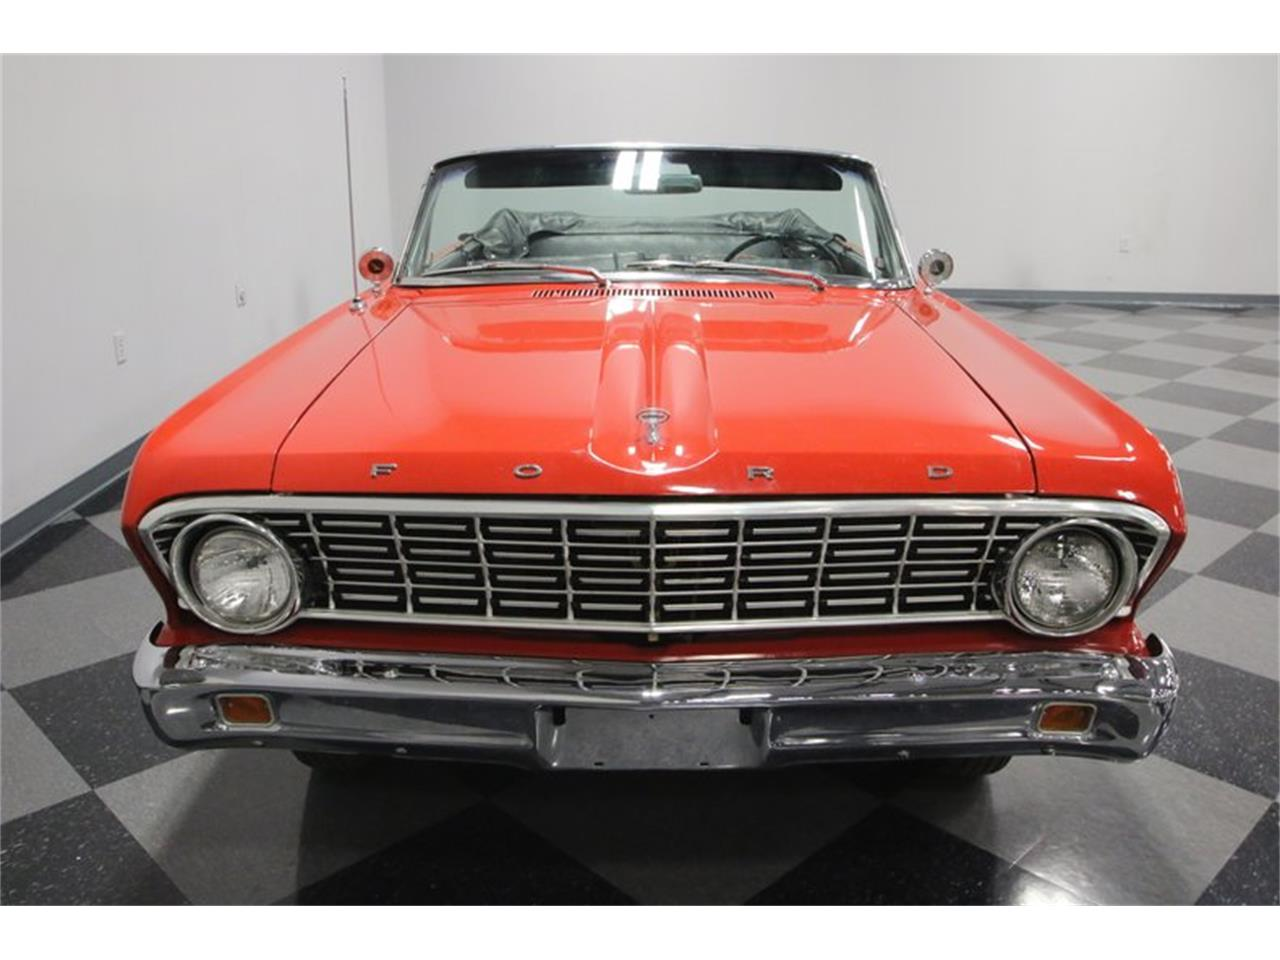 1964 Ford Falcon Futura for sale in Lavergne, TN – photo 18